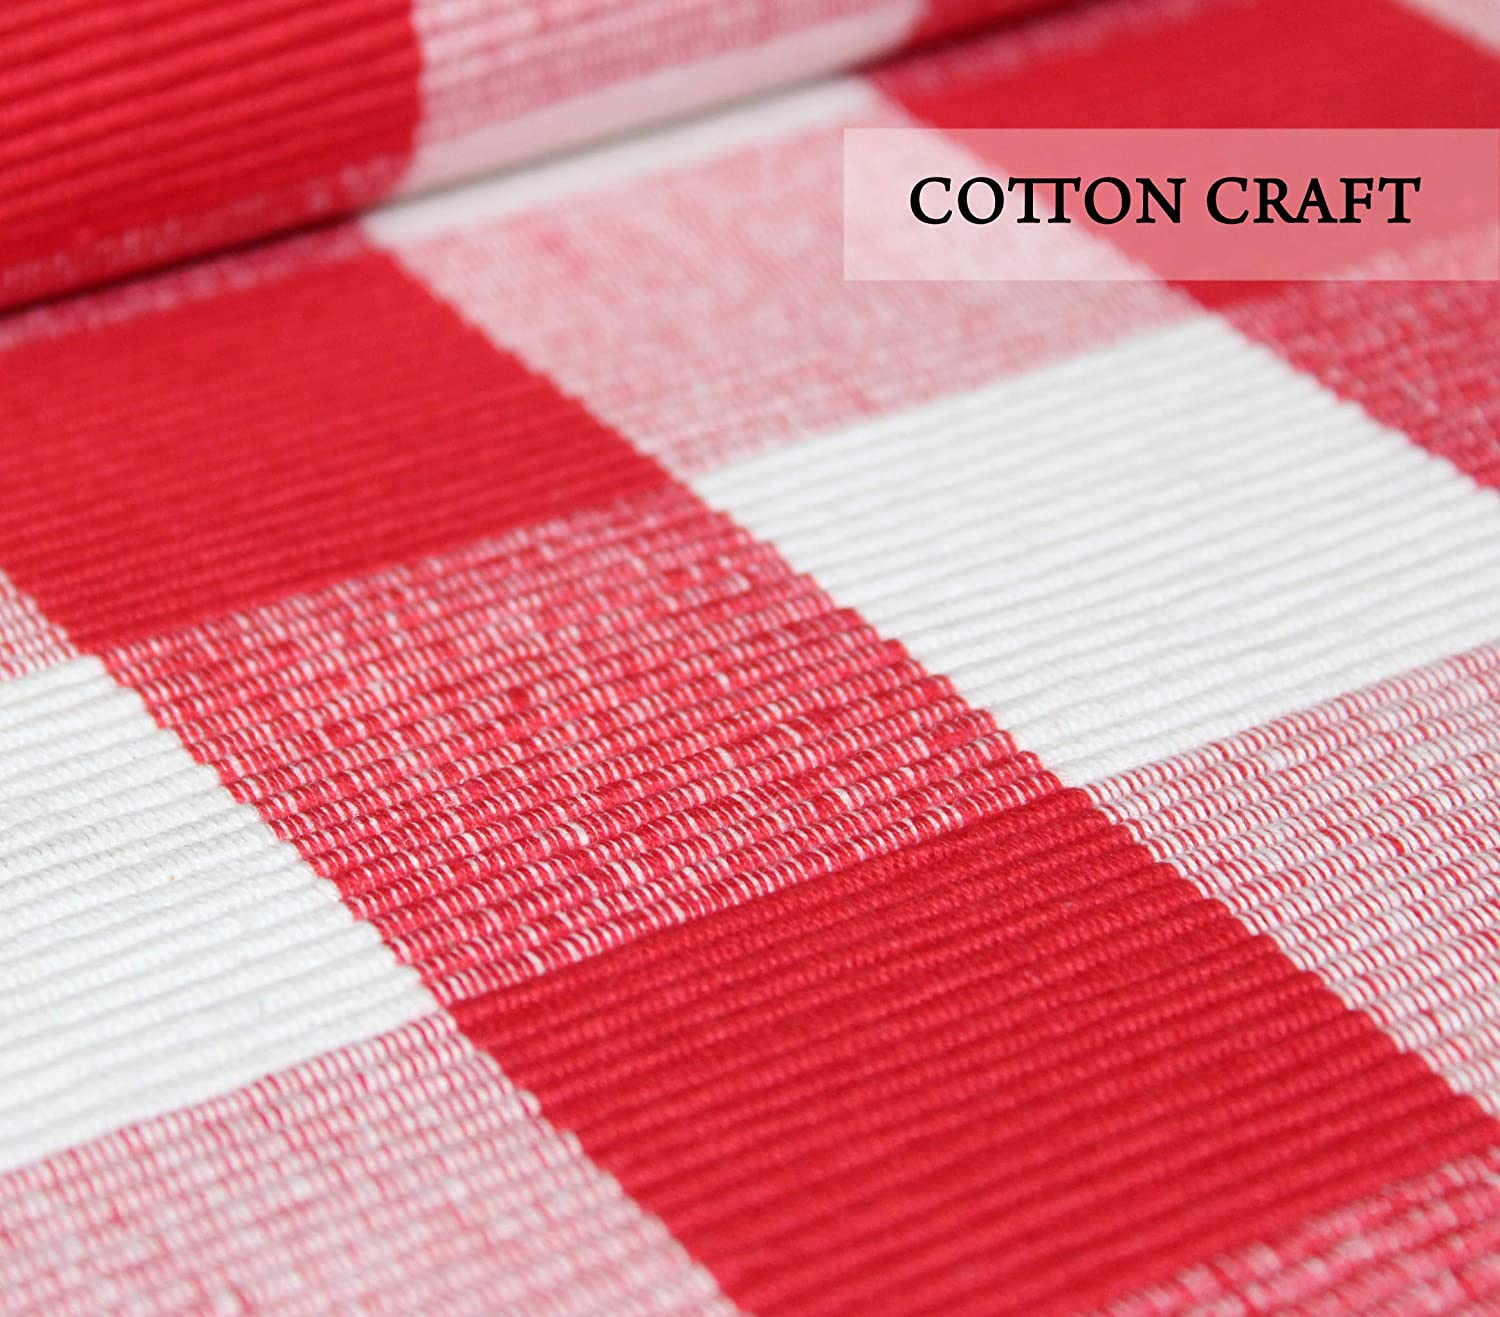 13x19 Hand Woven by Skilled artisans Red 100/% Cotton 8 Pack Plaid Buffalo Check Placemats COTTON CRAFT